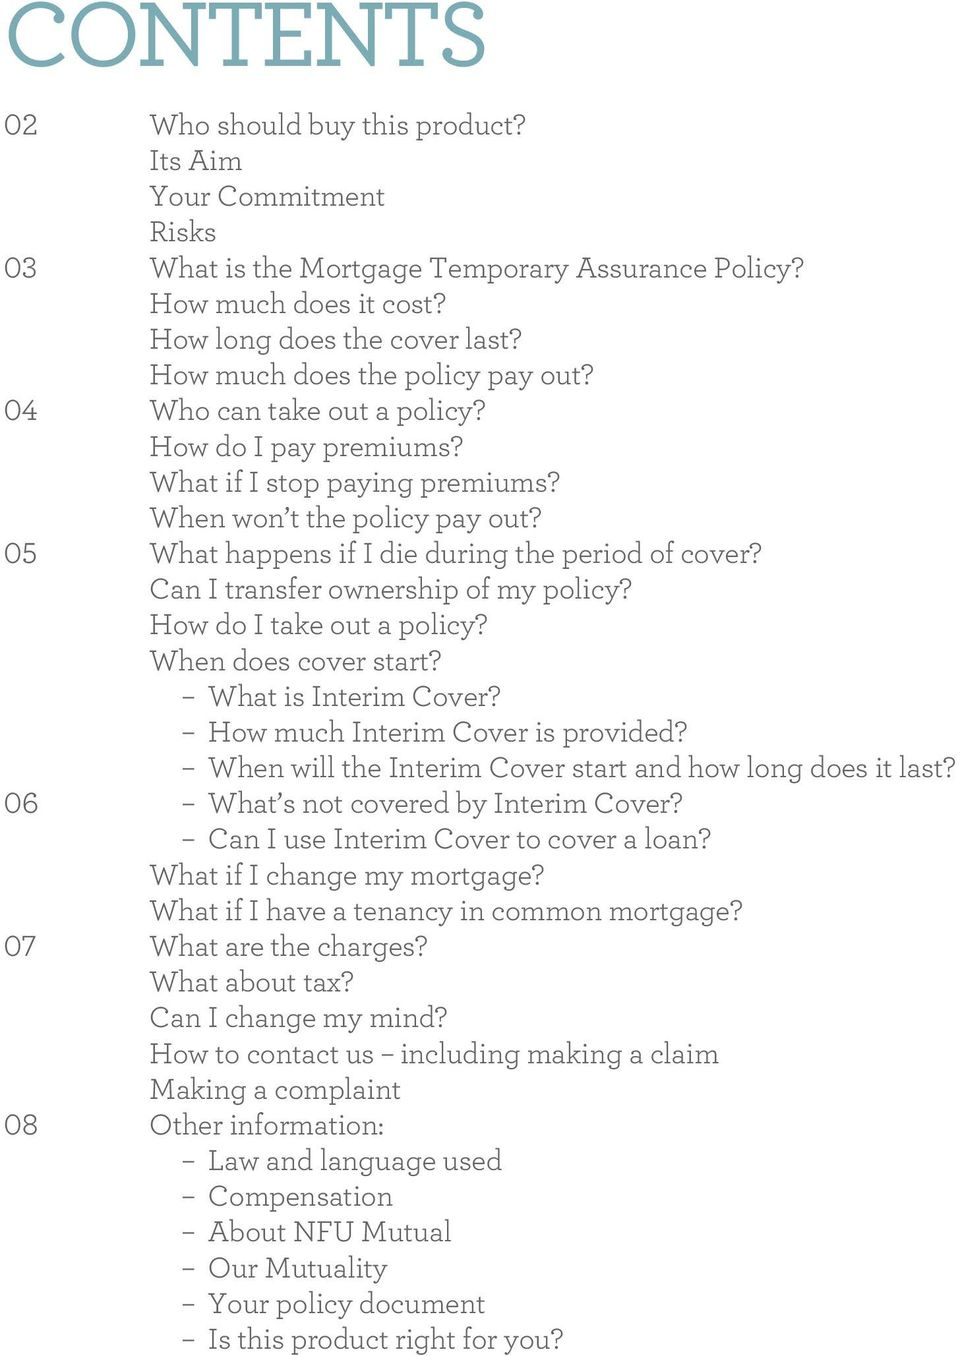 05 What happens if I die during the period of cover? Can I transfer ownership of my policy? How do I take out a policy? When does cover start? What is Interim Cover?